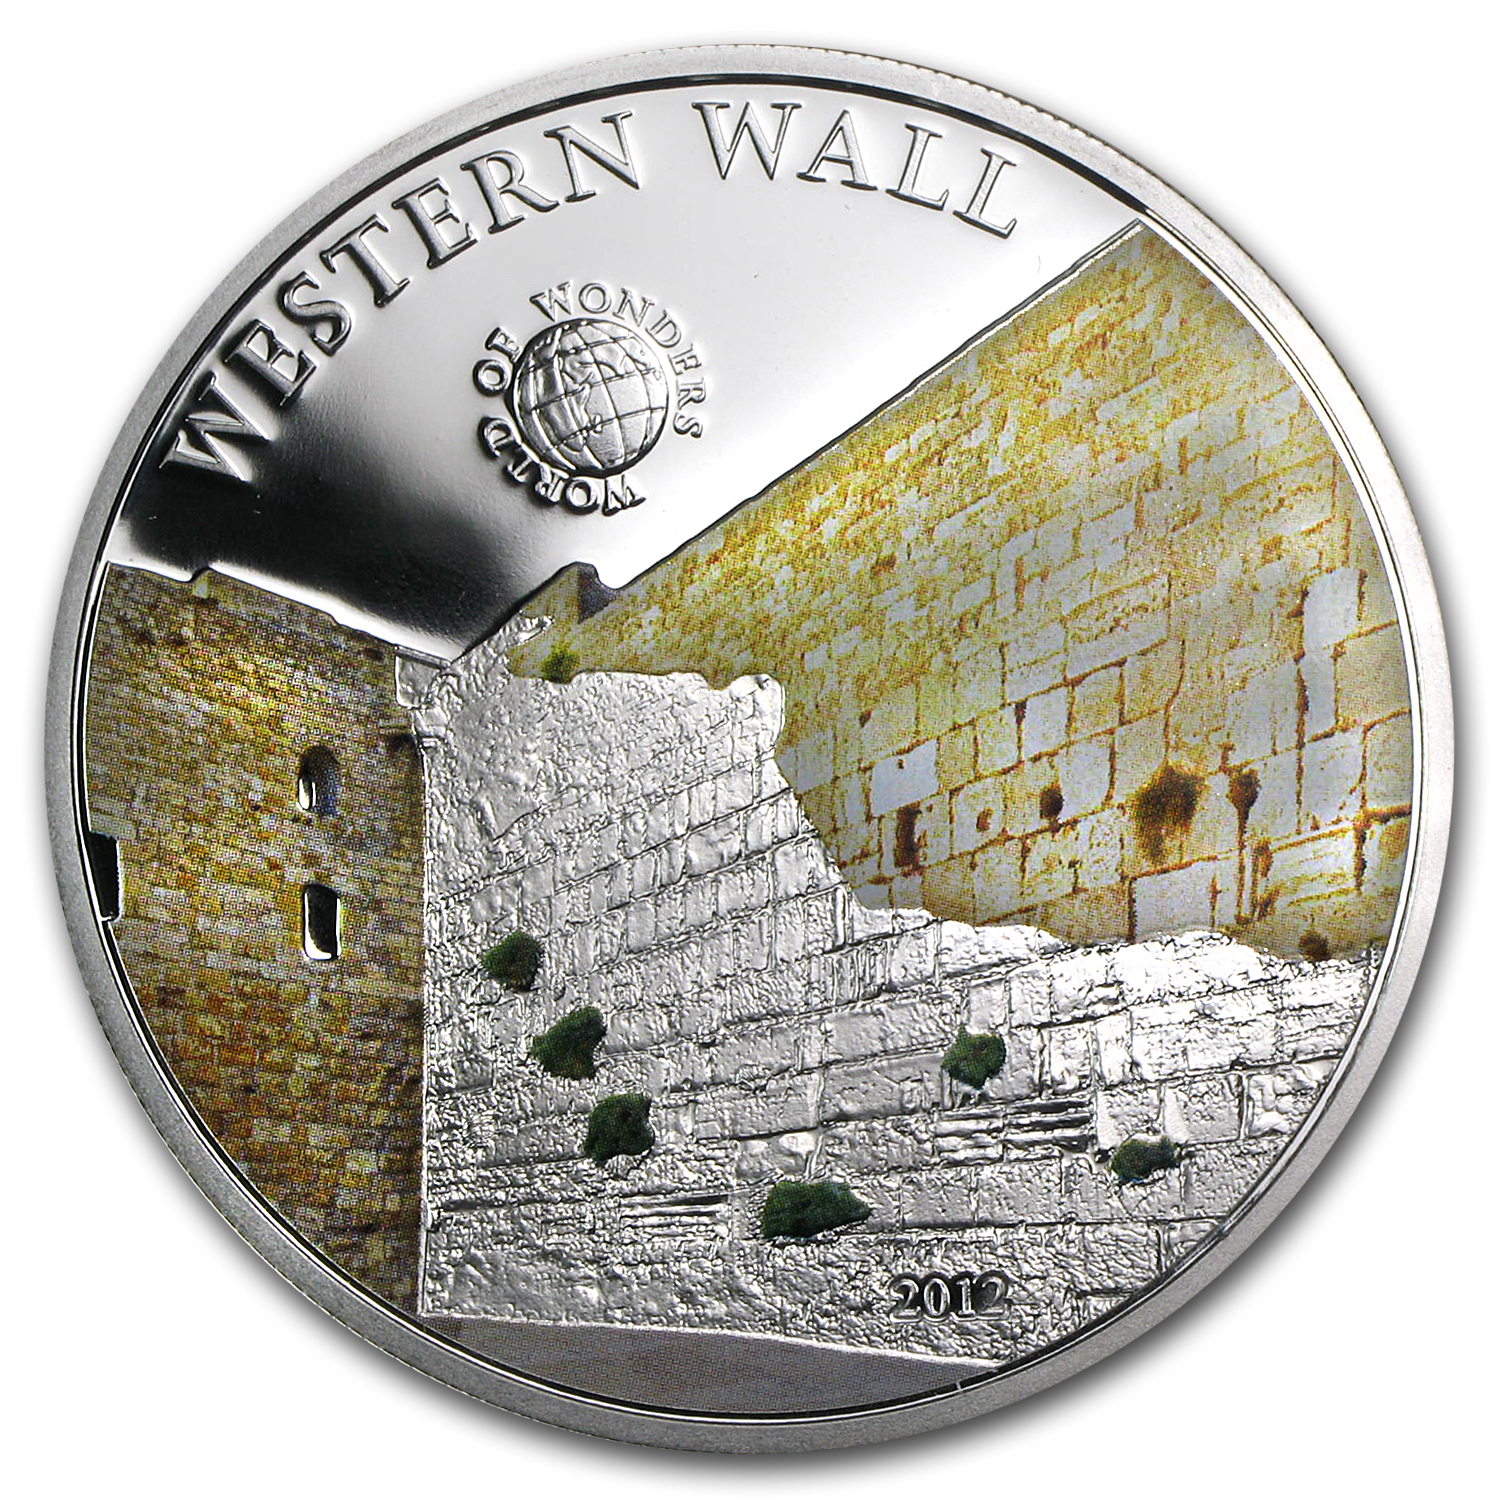 2012 Palau Proof Silver $5 World of Wonders Western Wall